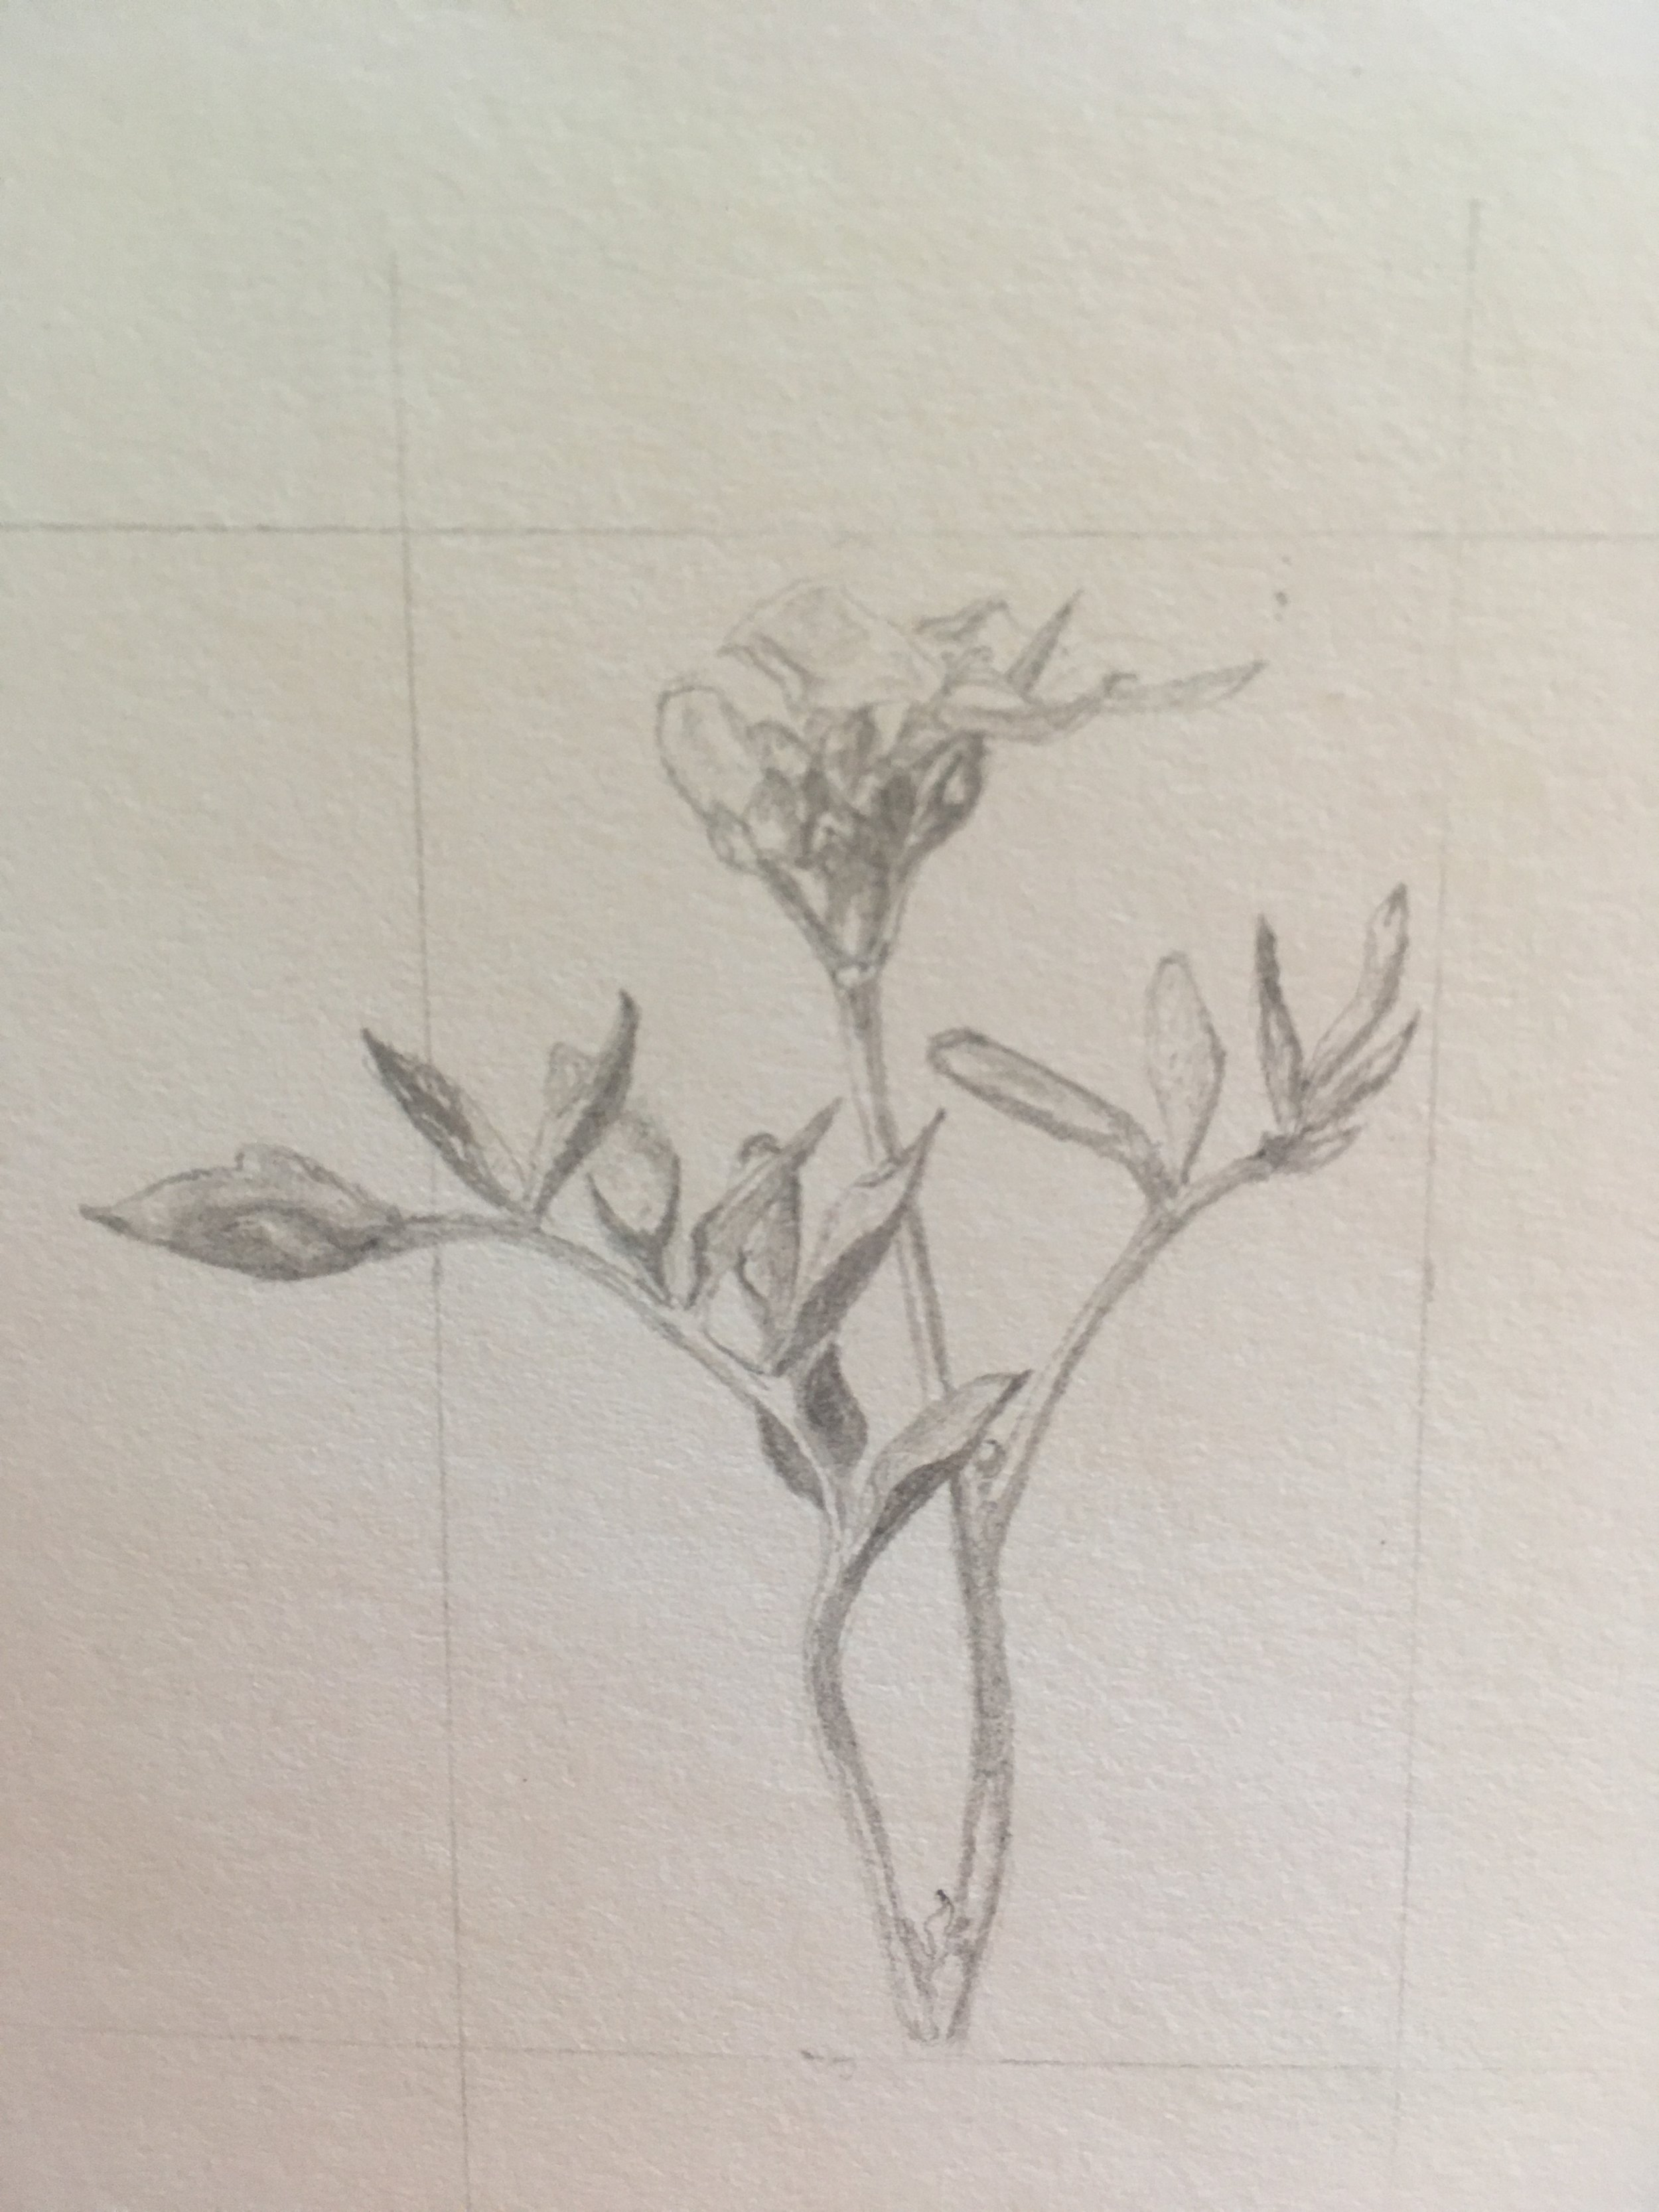 Translating flowers into scientific documents   I'm making botanical field sketches, and measured drawings of the flora that's popping up....